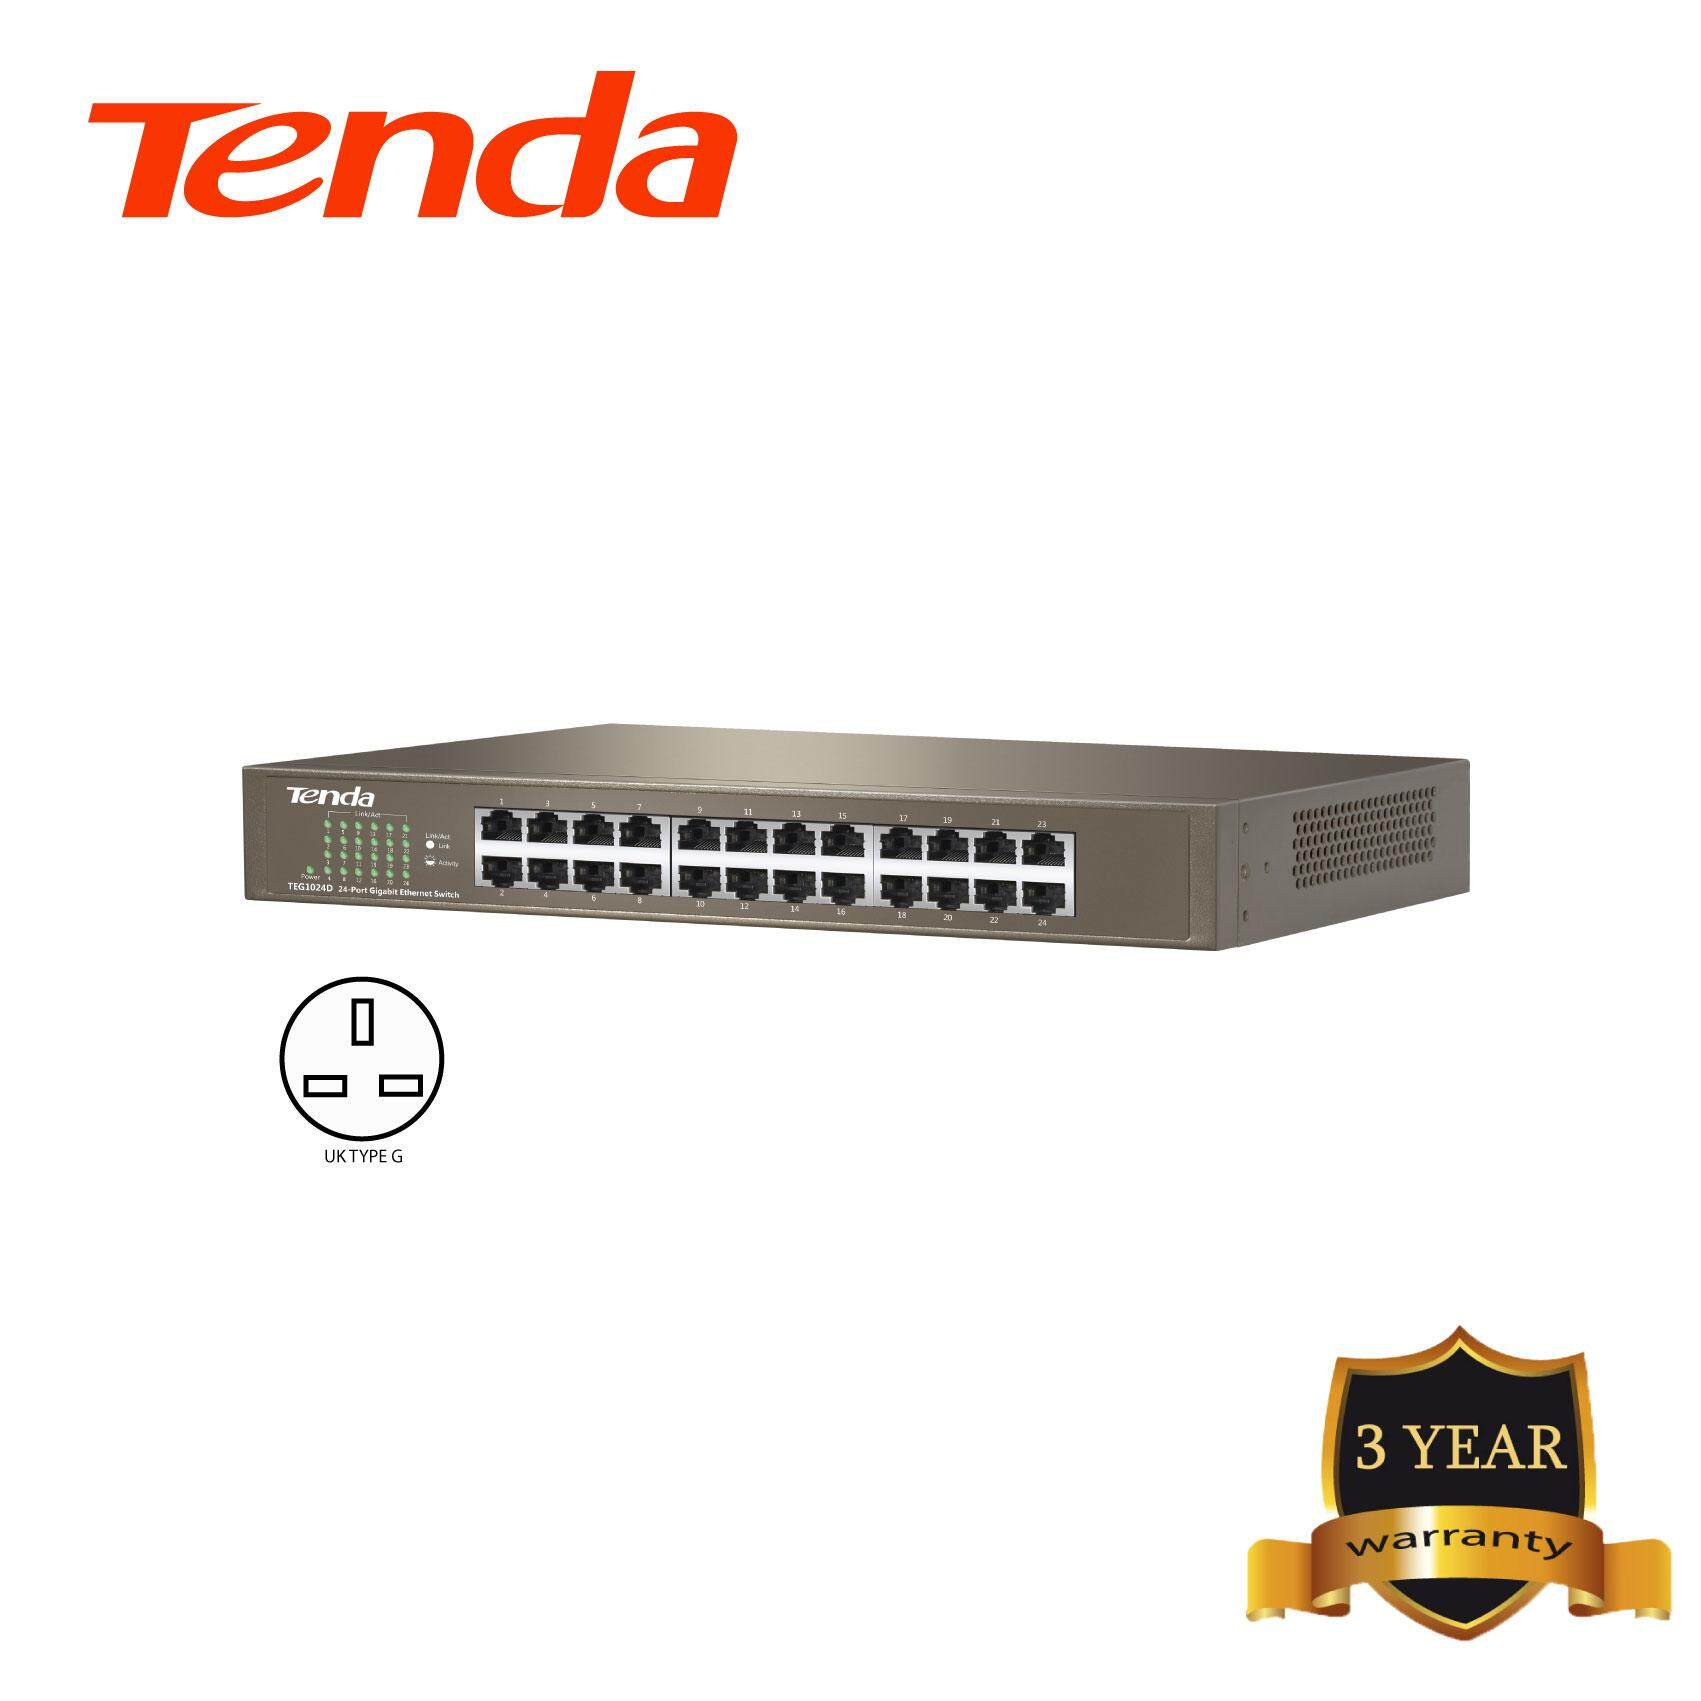 Tenda TEG1024D 24-port Gigabit Desktop/Rachmount Switch